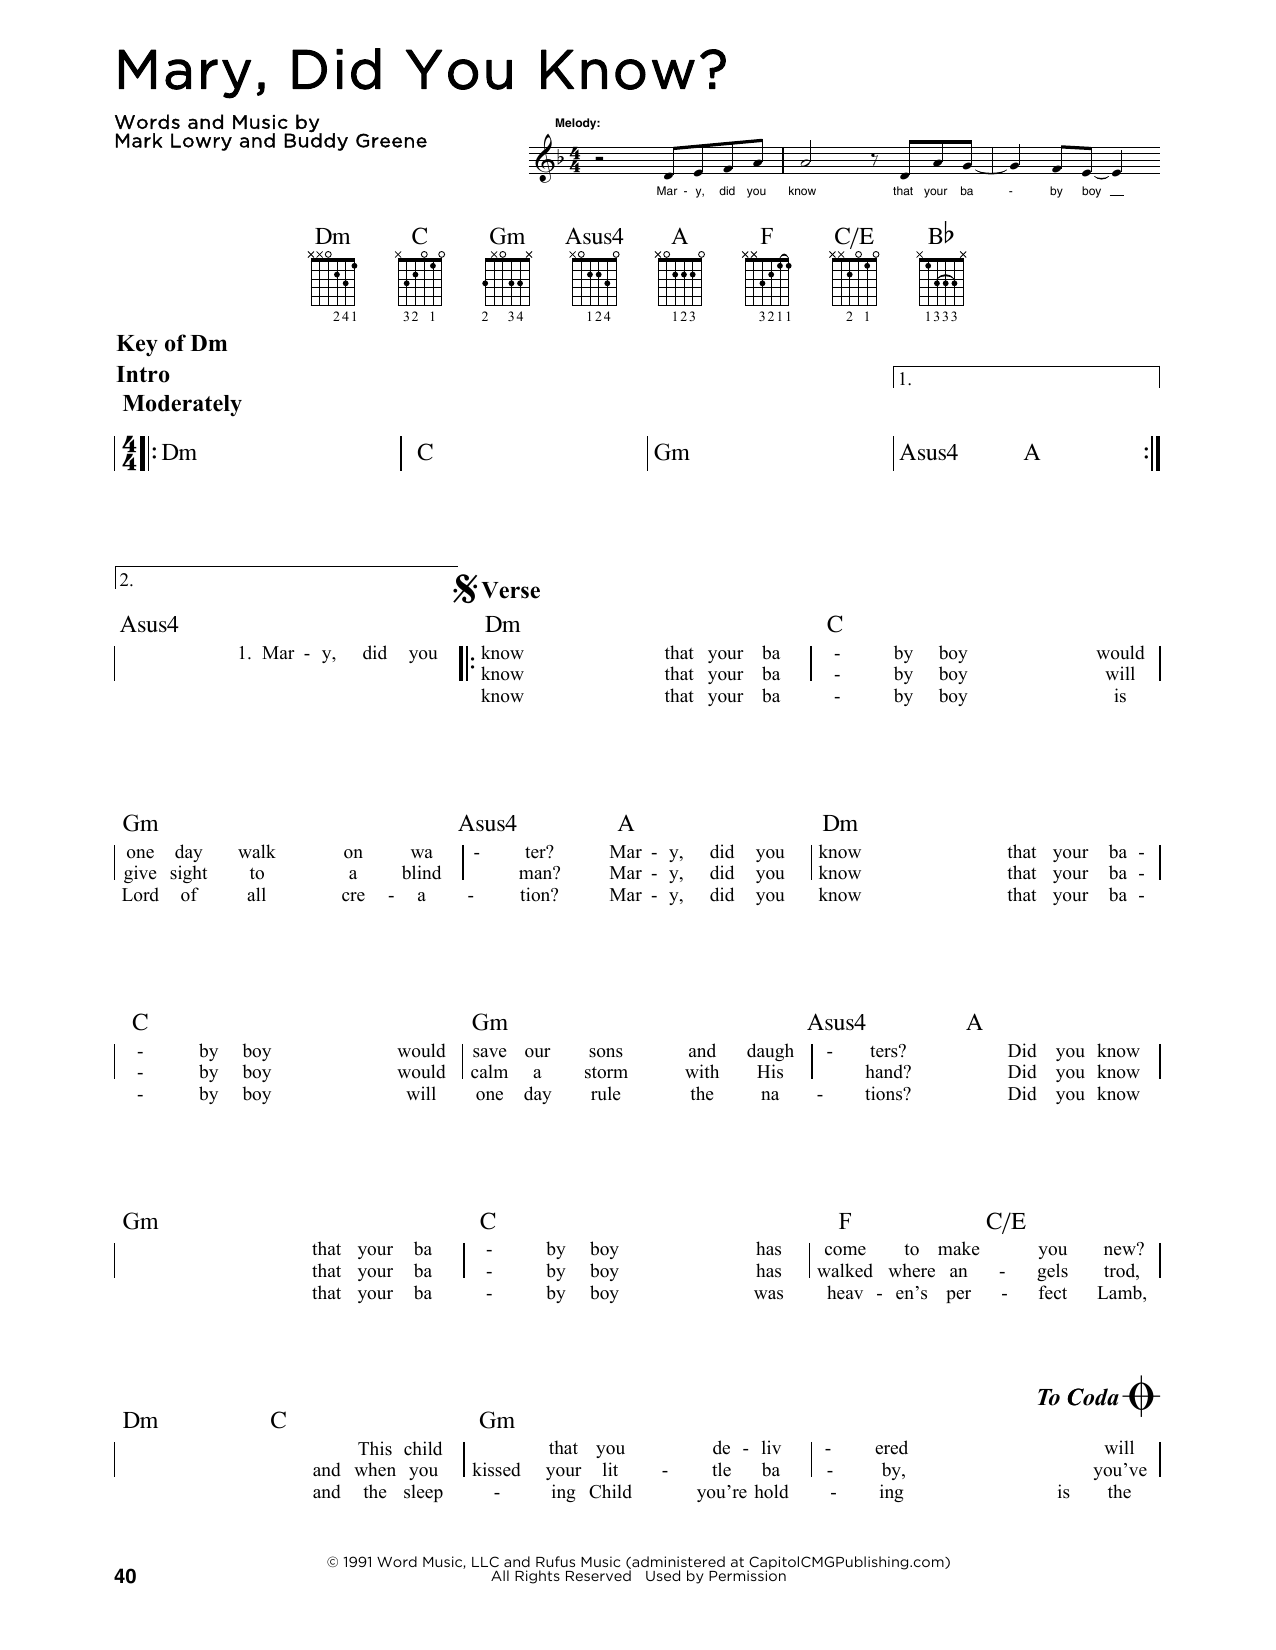 picture regarding Mary Did You Know Lyrics Printable identified as Mary, Did Yourself Comprehend? as a result of Mark Lowry - Guitar Direct Sheet